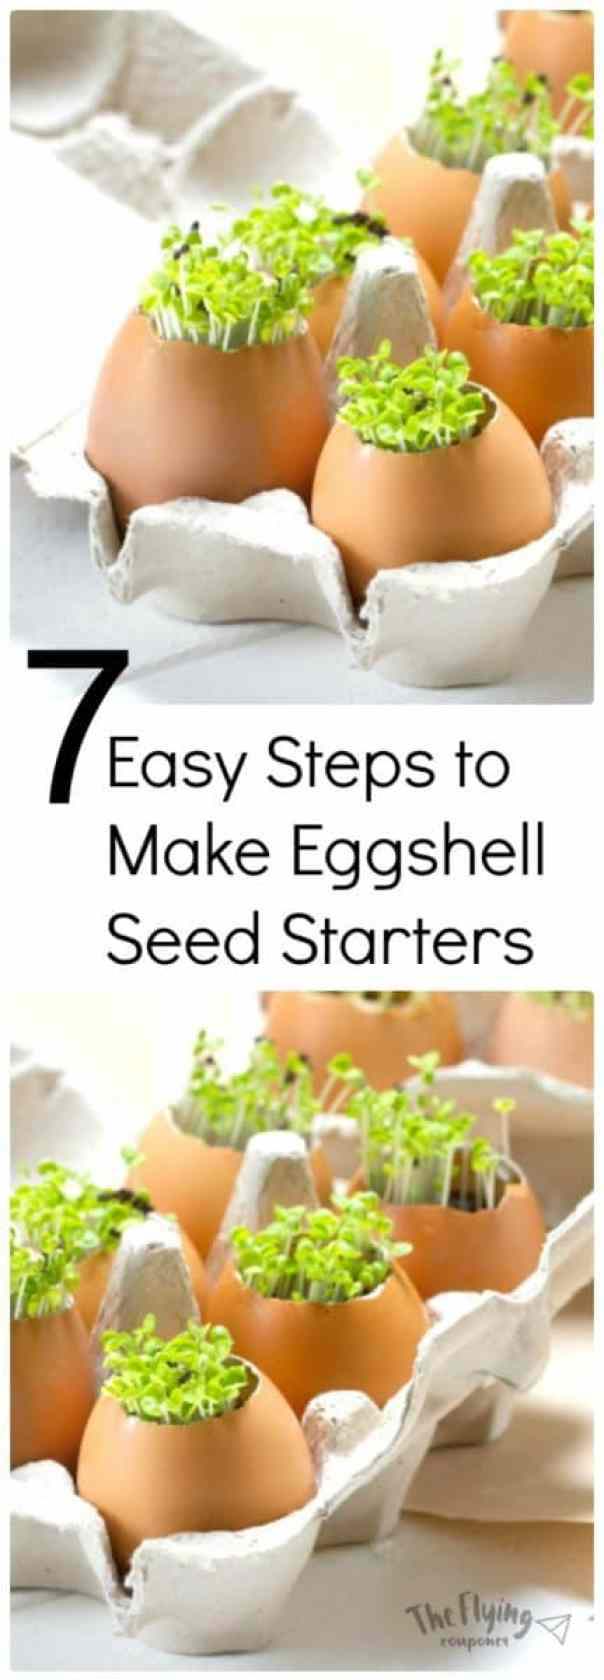 7 easy steps to make eggshell seed starters the flying for Gardening naturally coupon